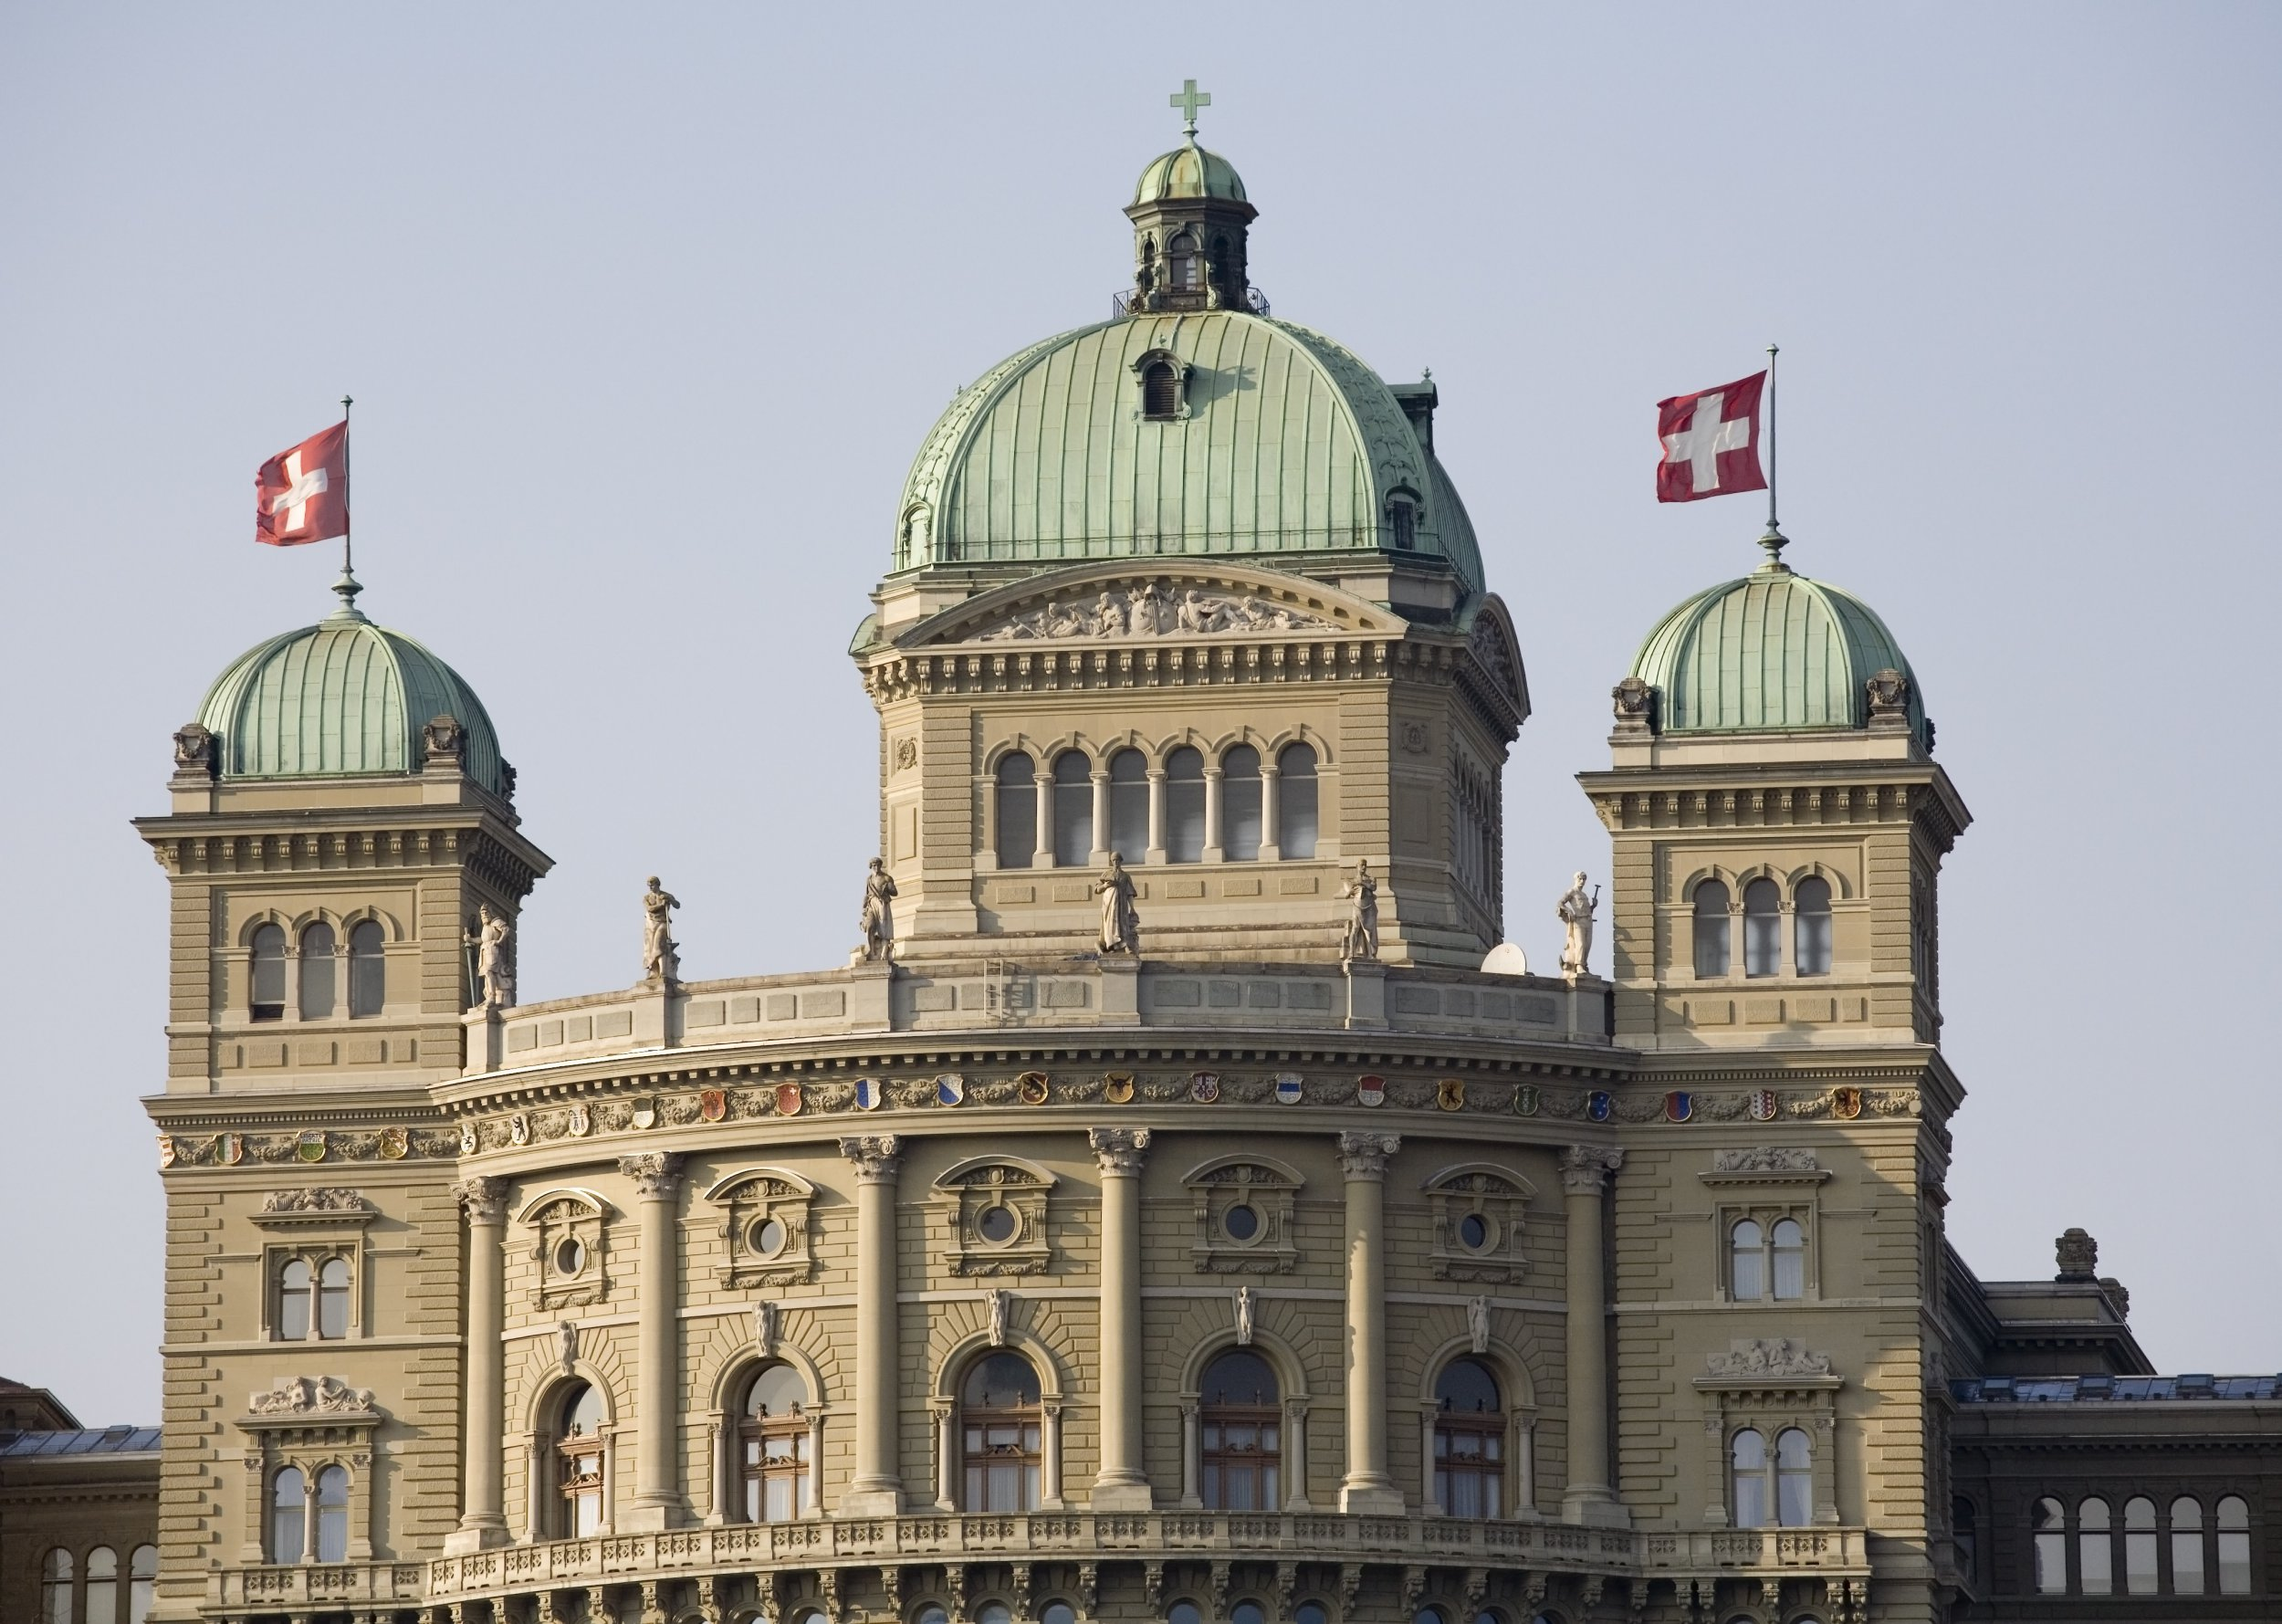 The Swiss government building Bundeshaus or Federal Palace of Switzerland, headquarter one of the oldest democracies in the world, Berne, capital city of Switzerland, Europe